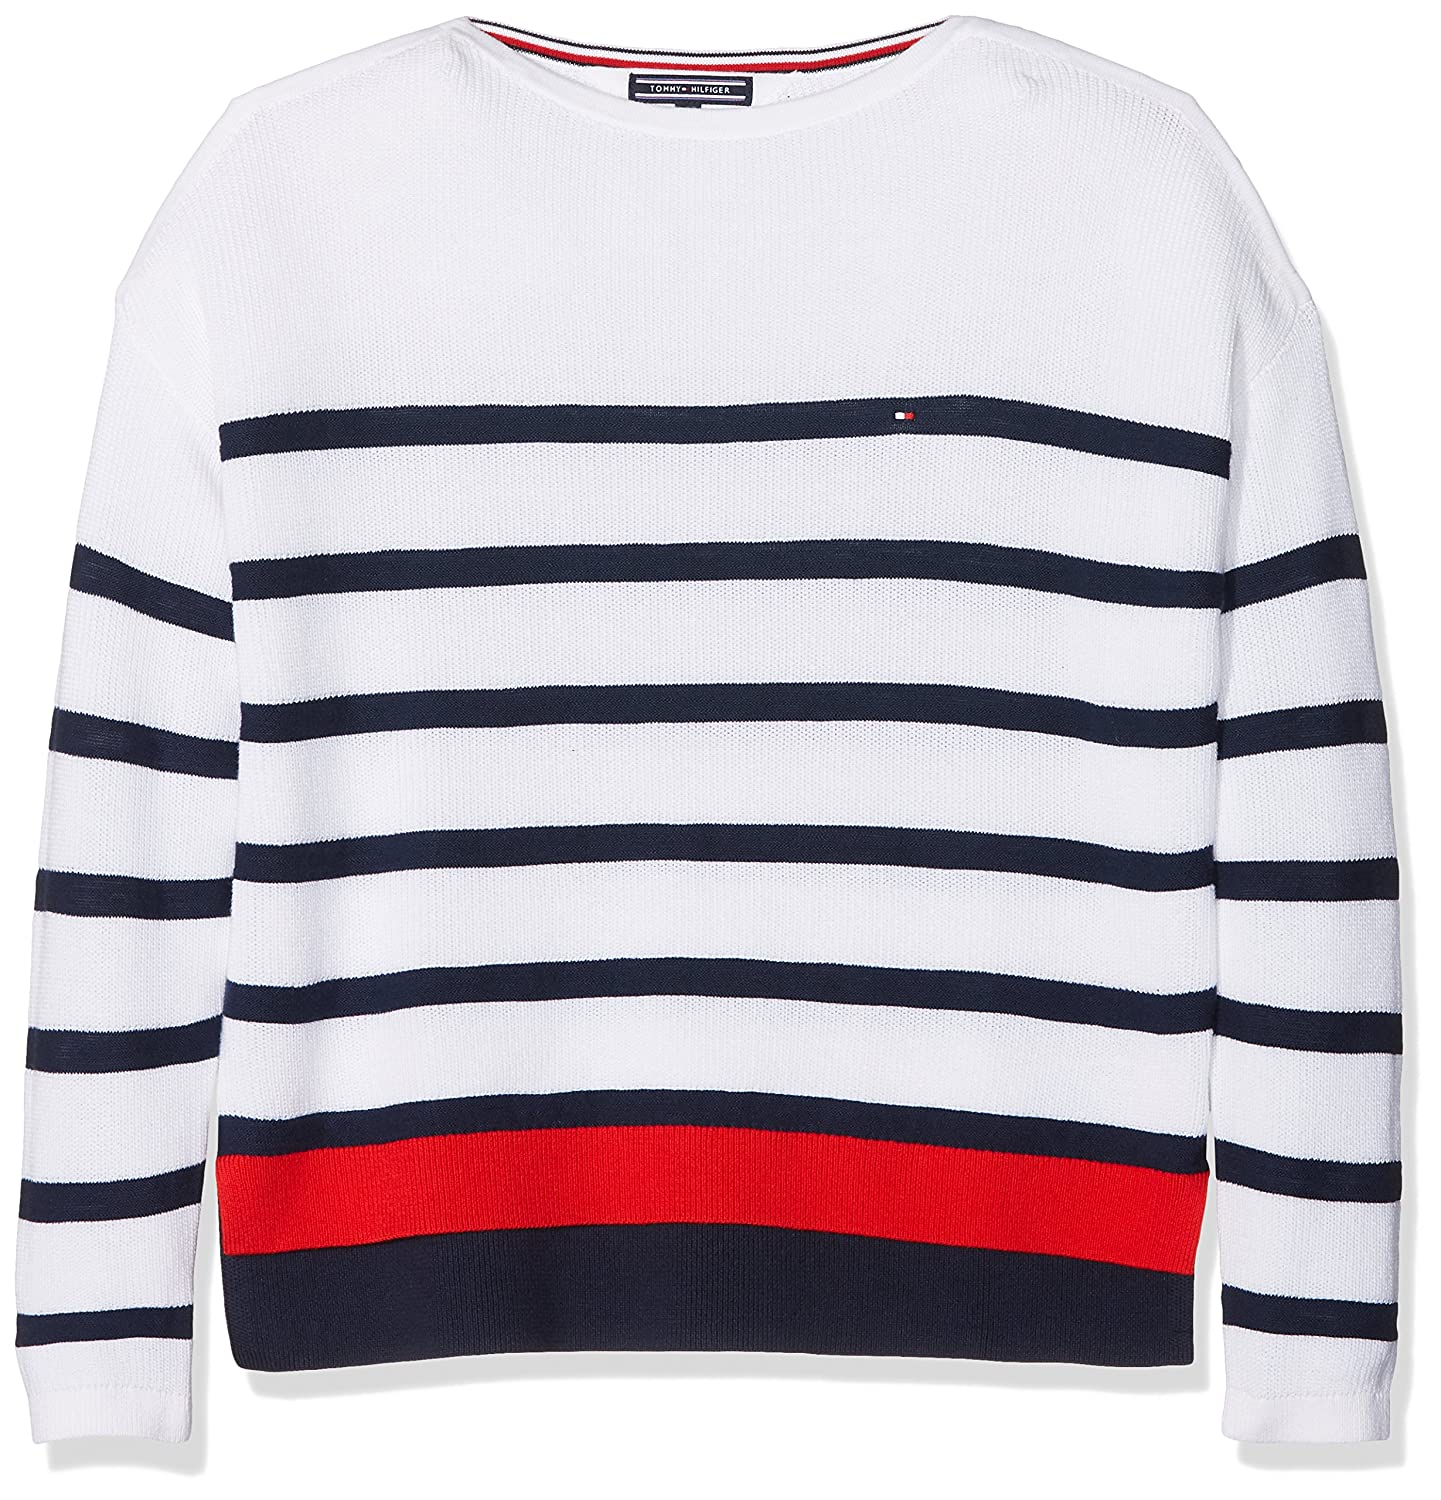 Tommy Hilfiger Girl's Delightful Stripe Bn Sweater Jumper KG0KG03442